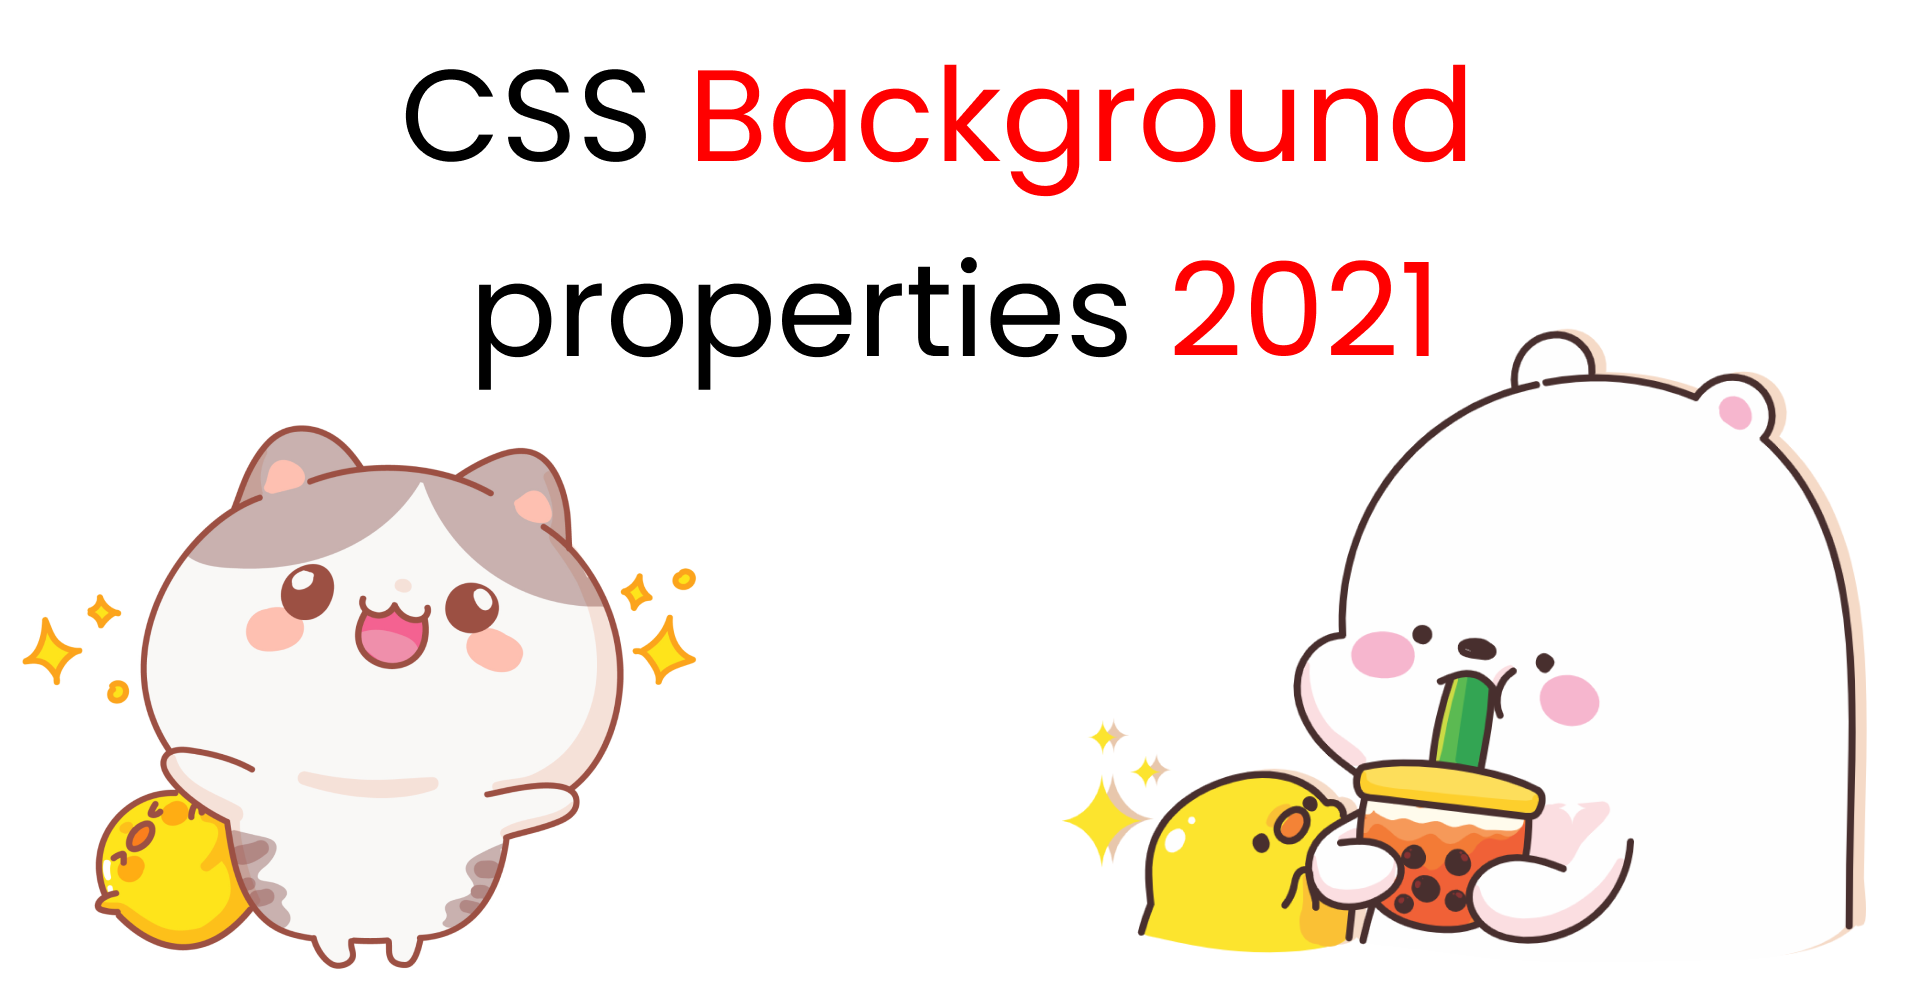 Every CSS Background Property Illustrated and Explained with Code Examples 🎖️